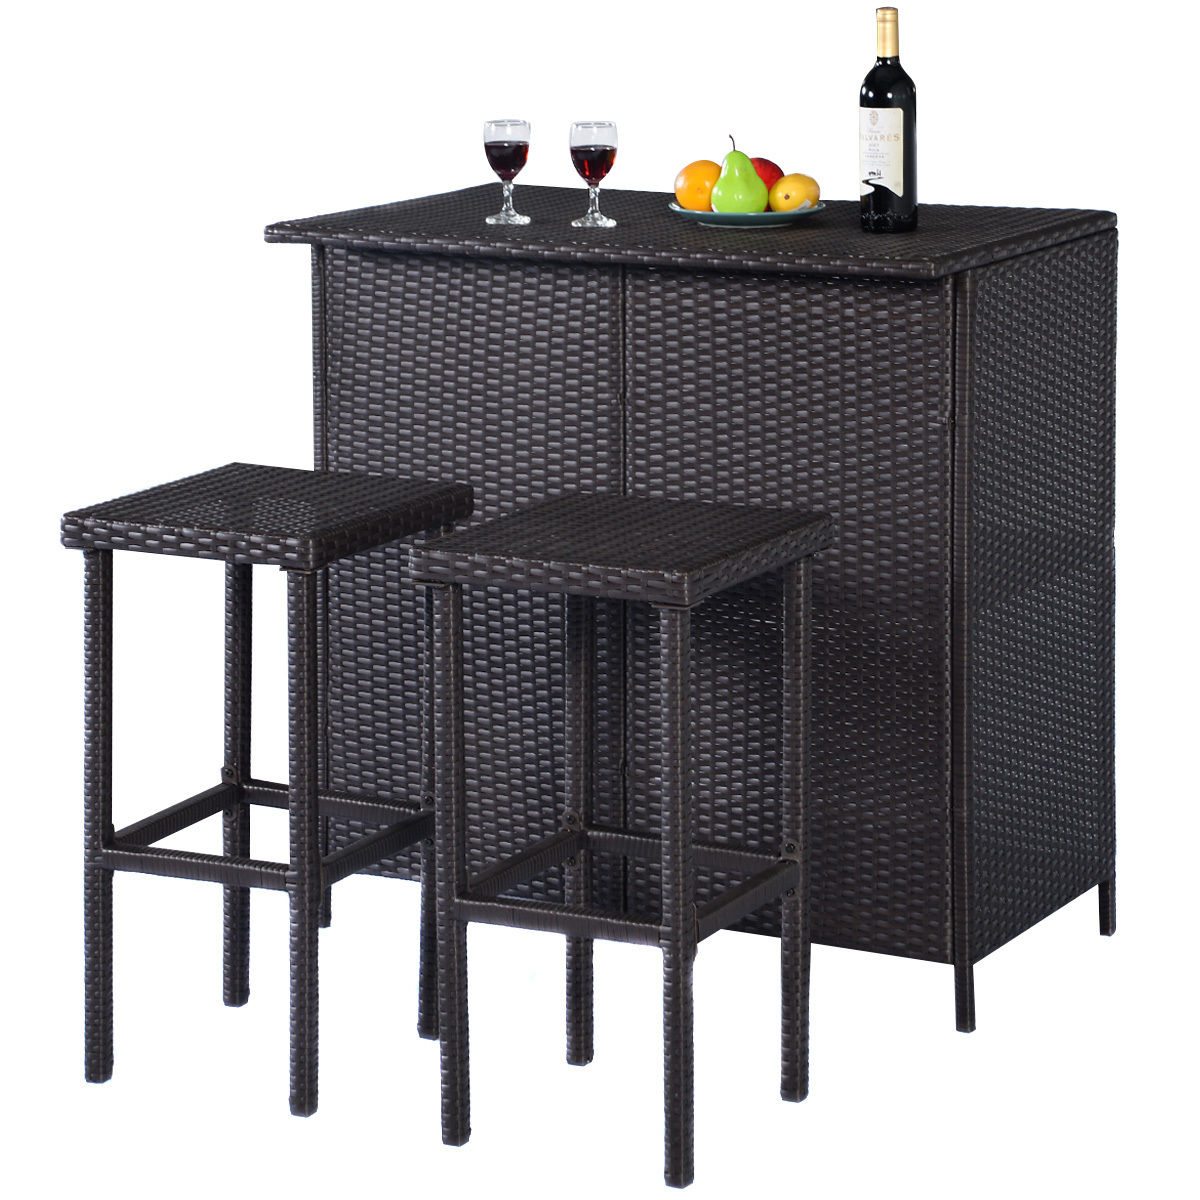 Costway 3PCS Rattan Wicker Bar Set Patio Outdoor Table & 2 Stools Furniture Brown